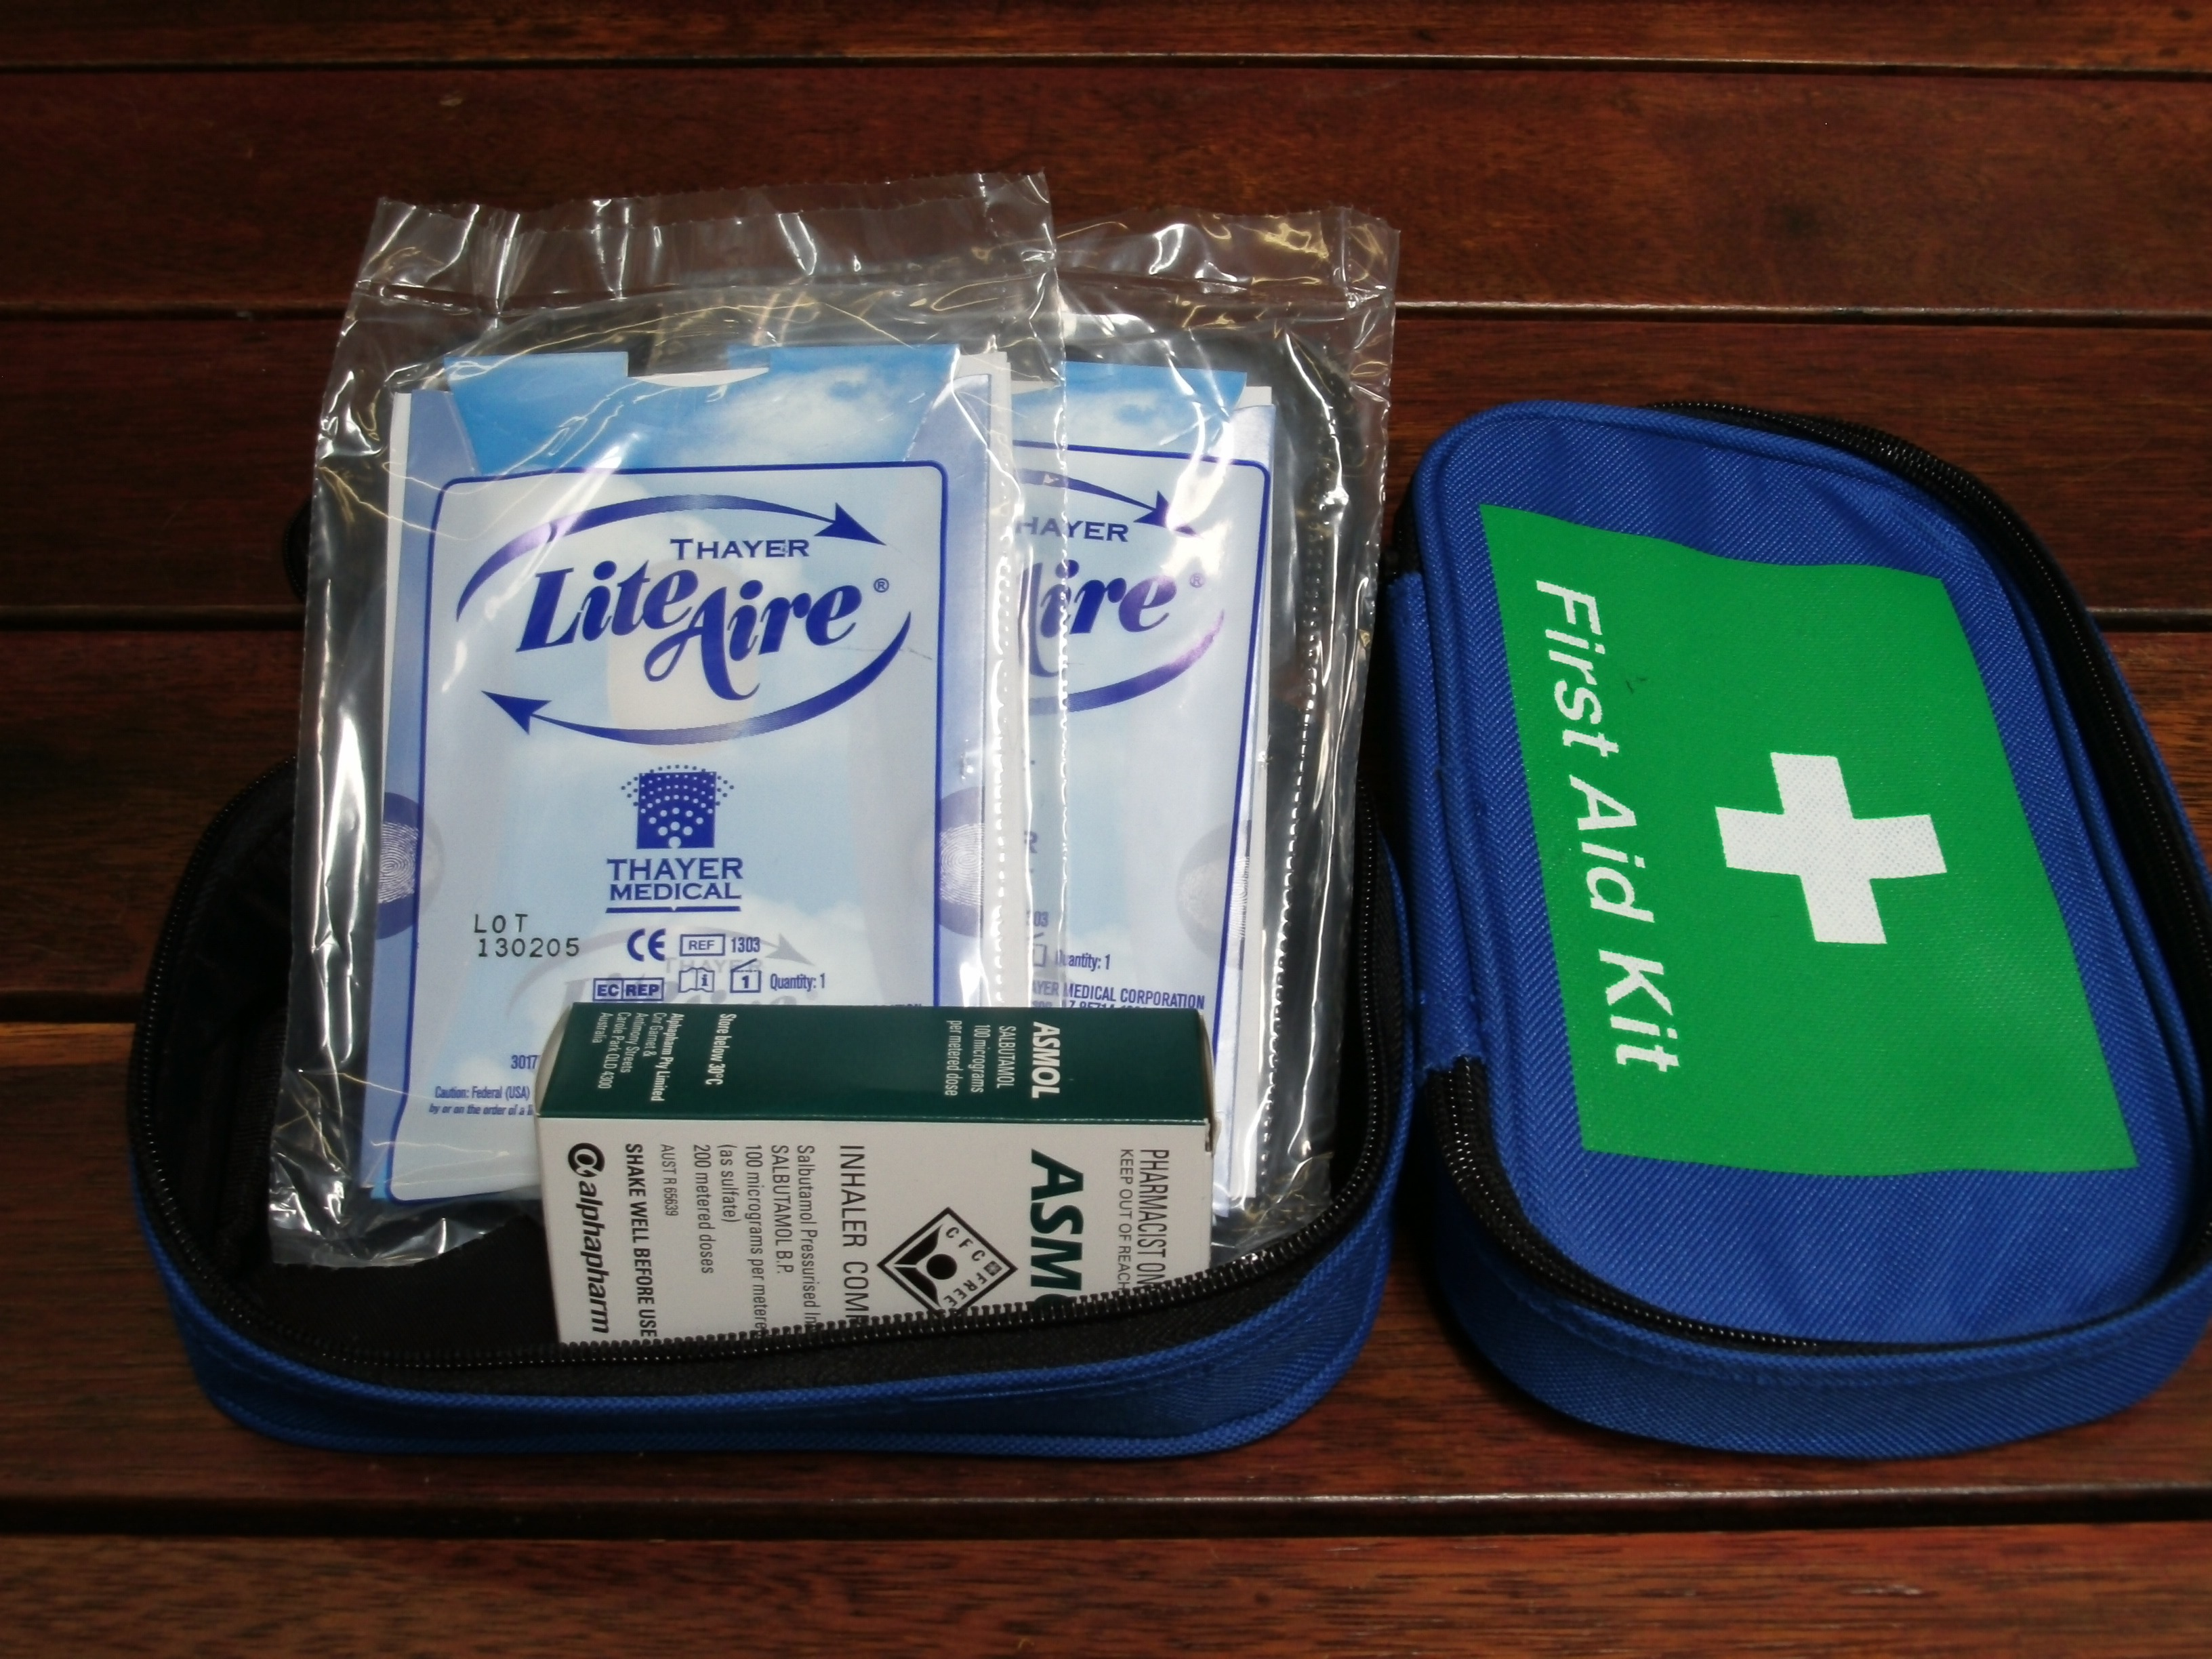 Kit Asthma Softpack Adelaide Safety Supplies